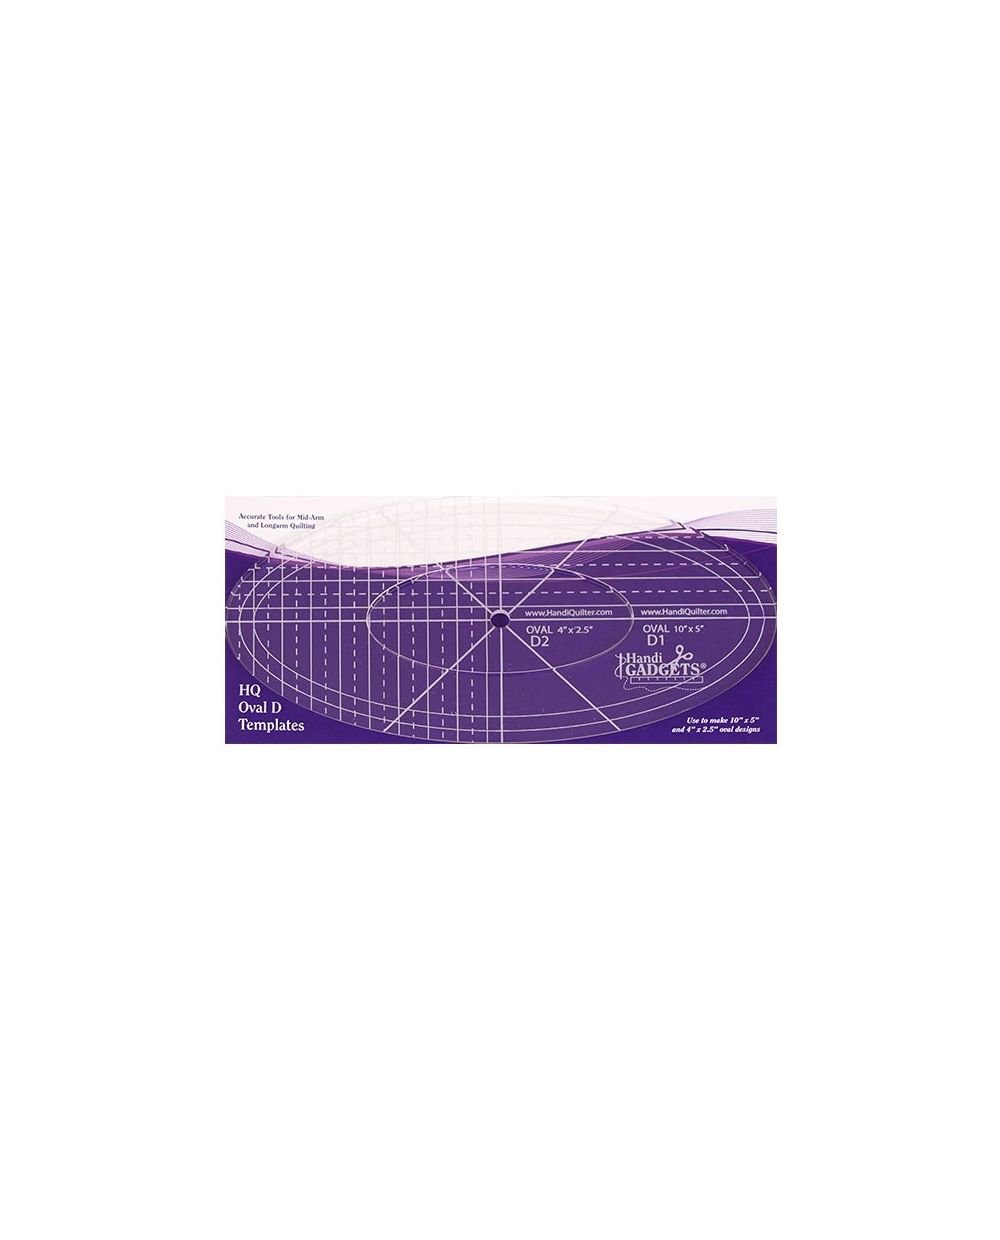 HQ Rulers - Oval D Templates `